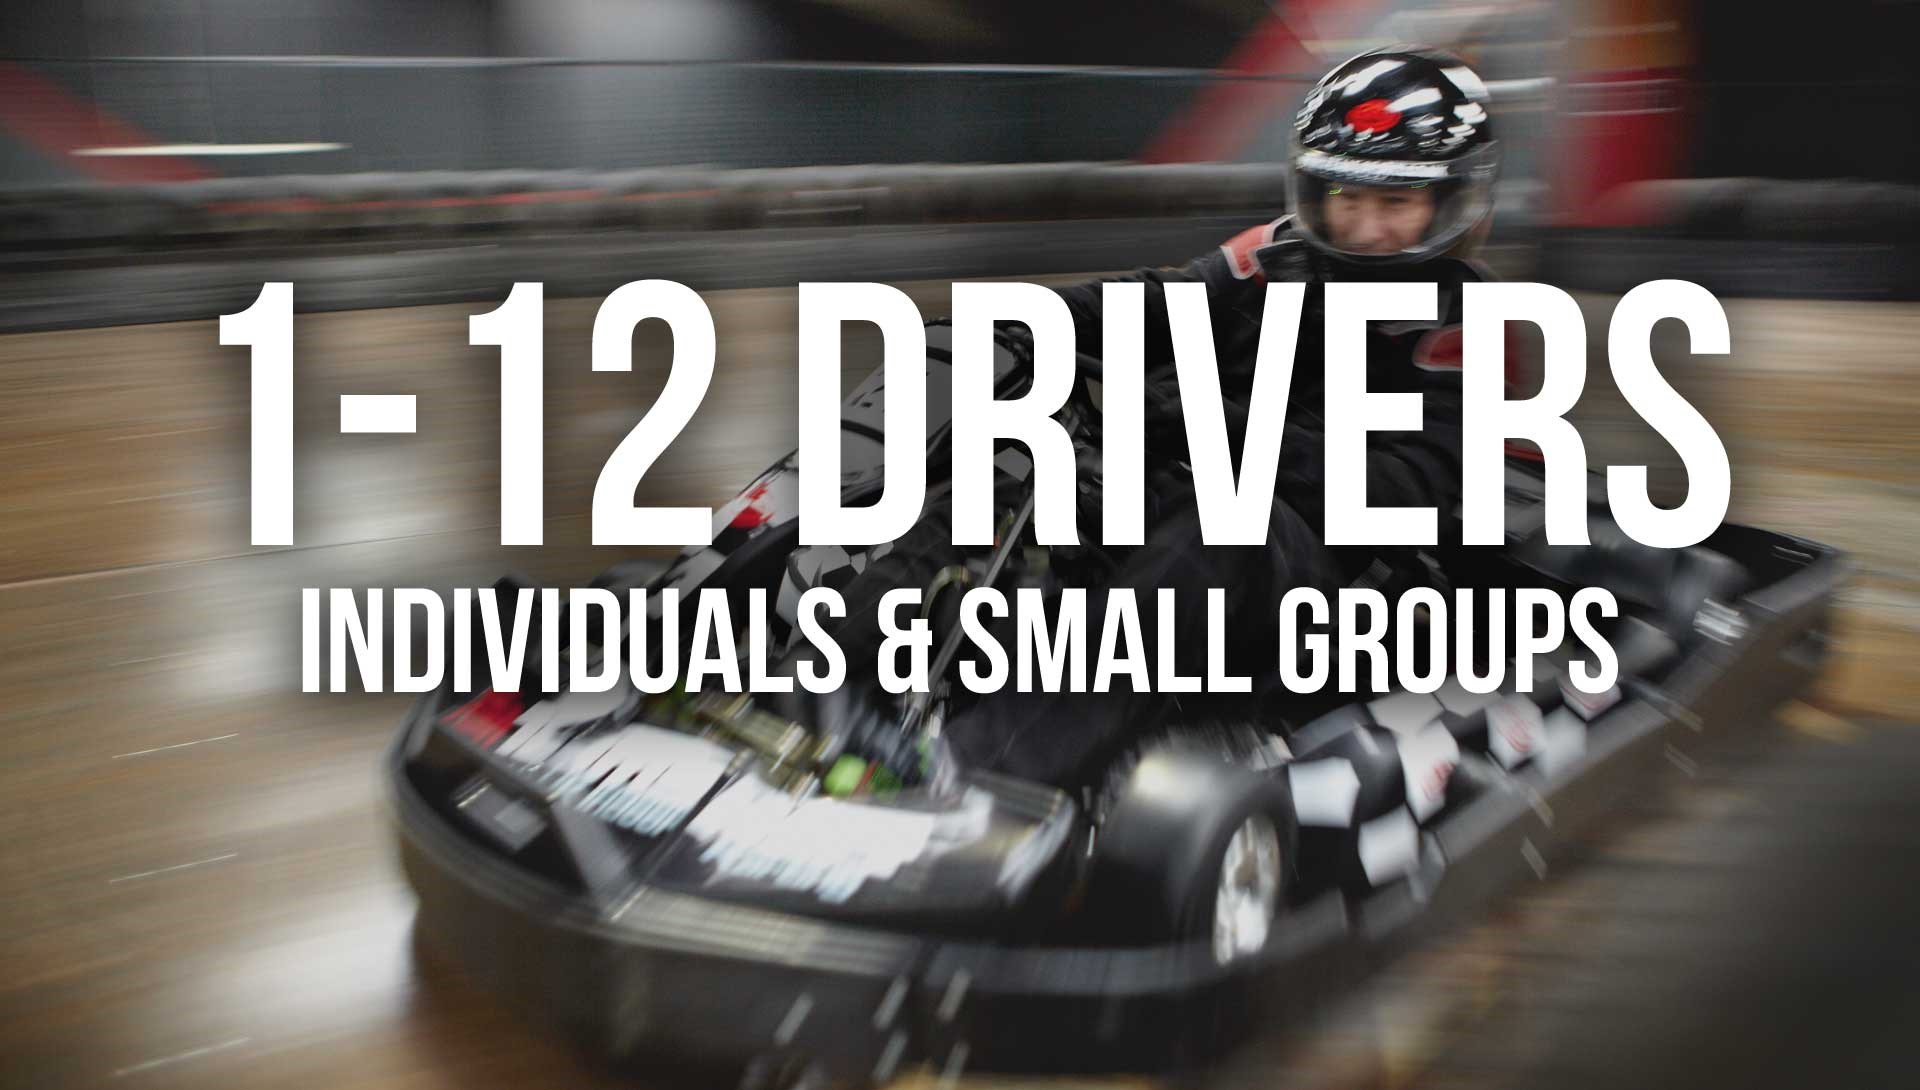 Indoor Go Karting  Events Brighton - Individuals and Small Groups